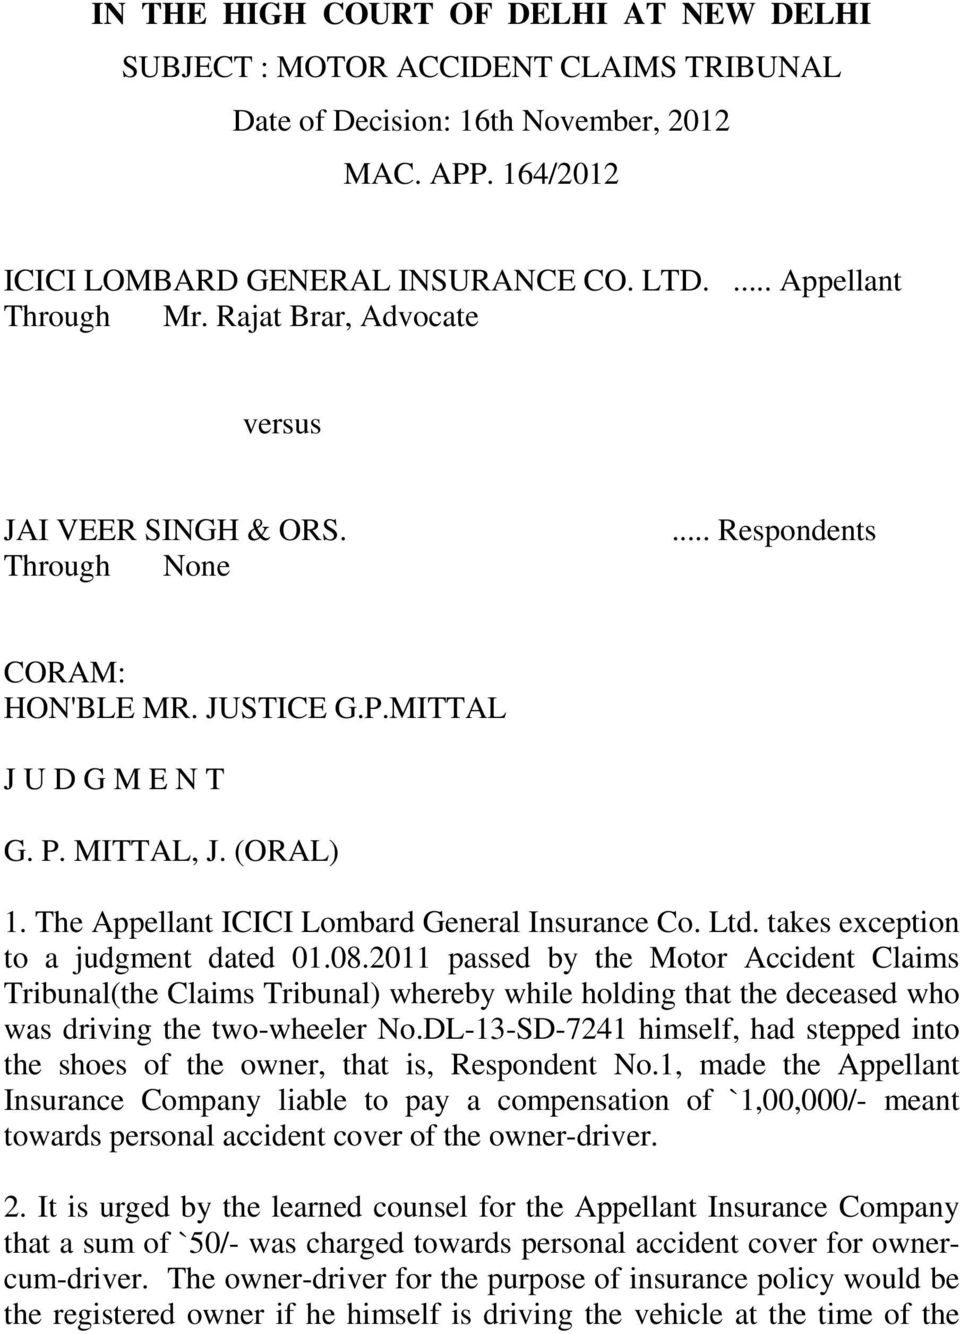 The Appellant ICICI Lombard General Insurance Co. Ltd. takes exception to a judgment dated 01.08.